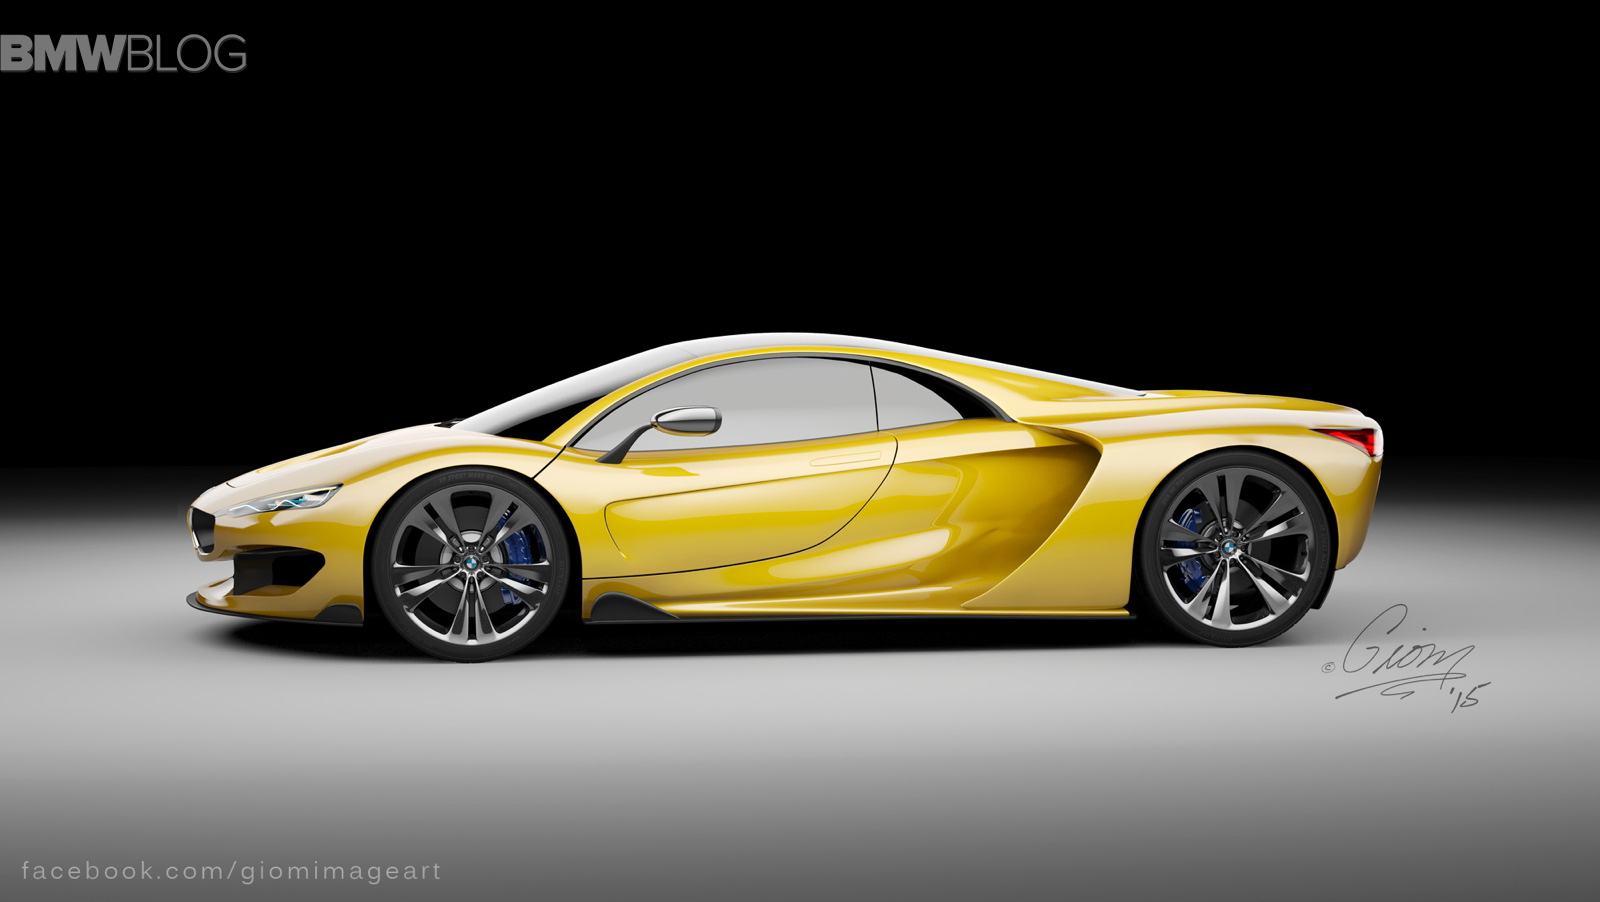 Rendering: BMW Hypercar To Compete With McLaren P1 And